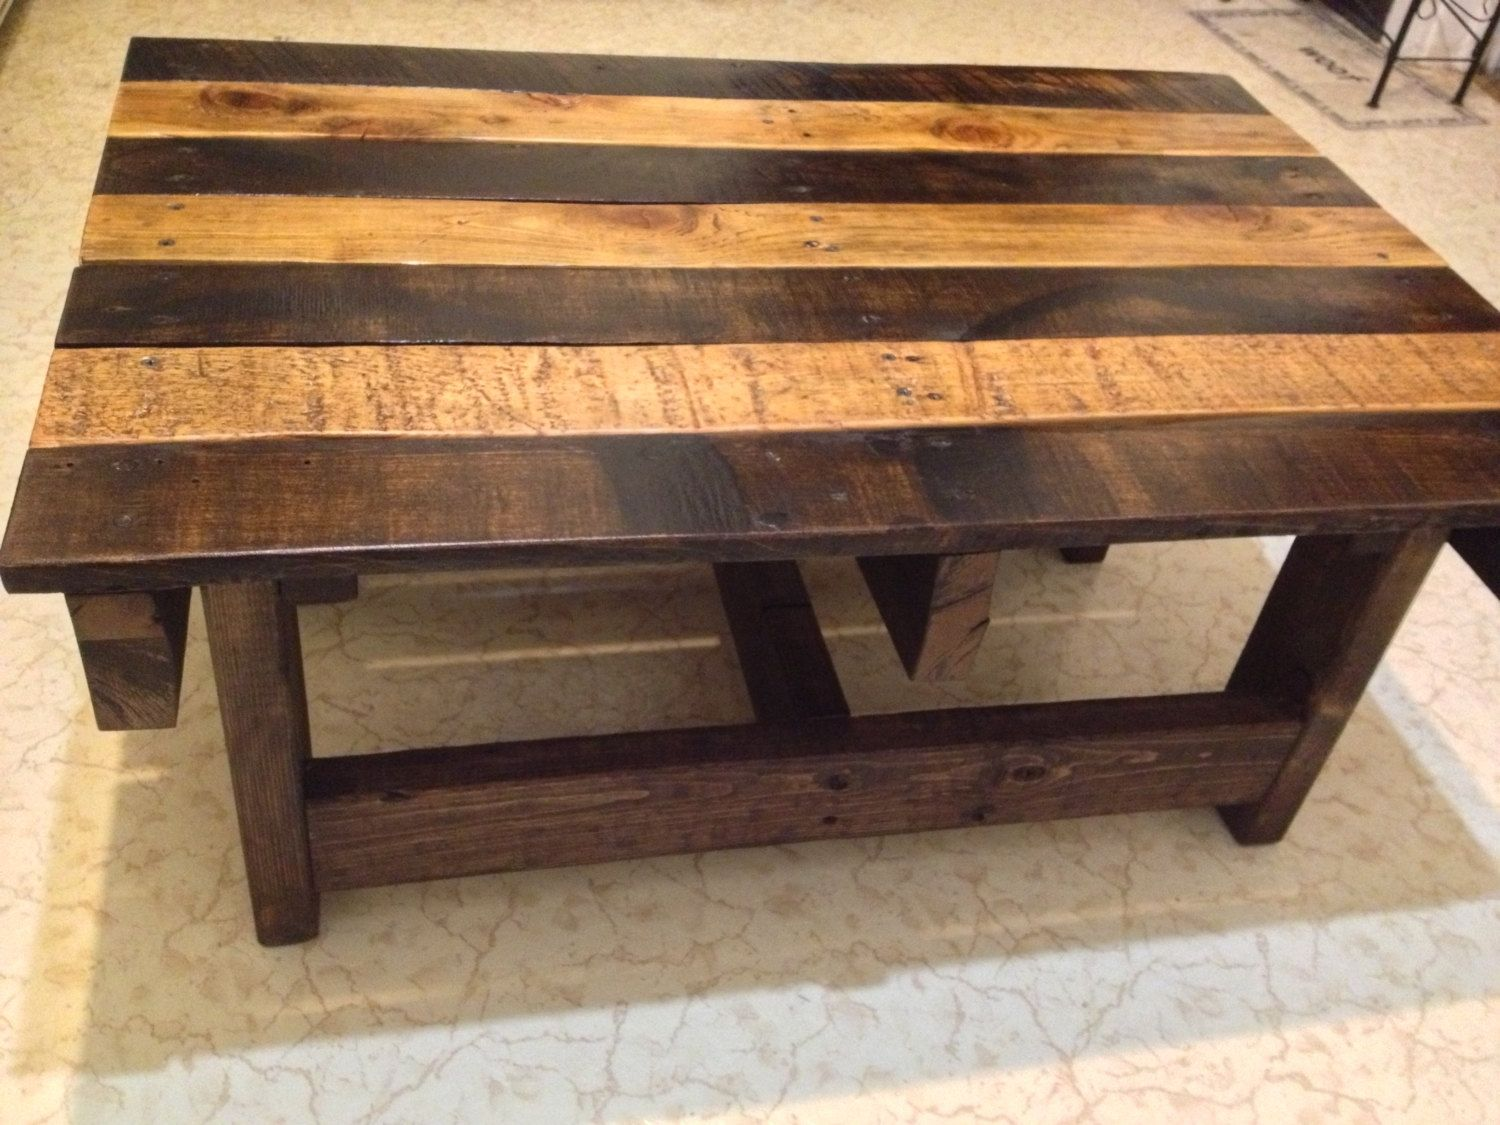 Hand crafted handmade reclaimed rustic pallet wood coffee Table making ideas